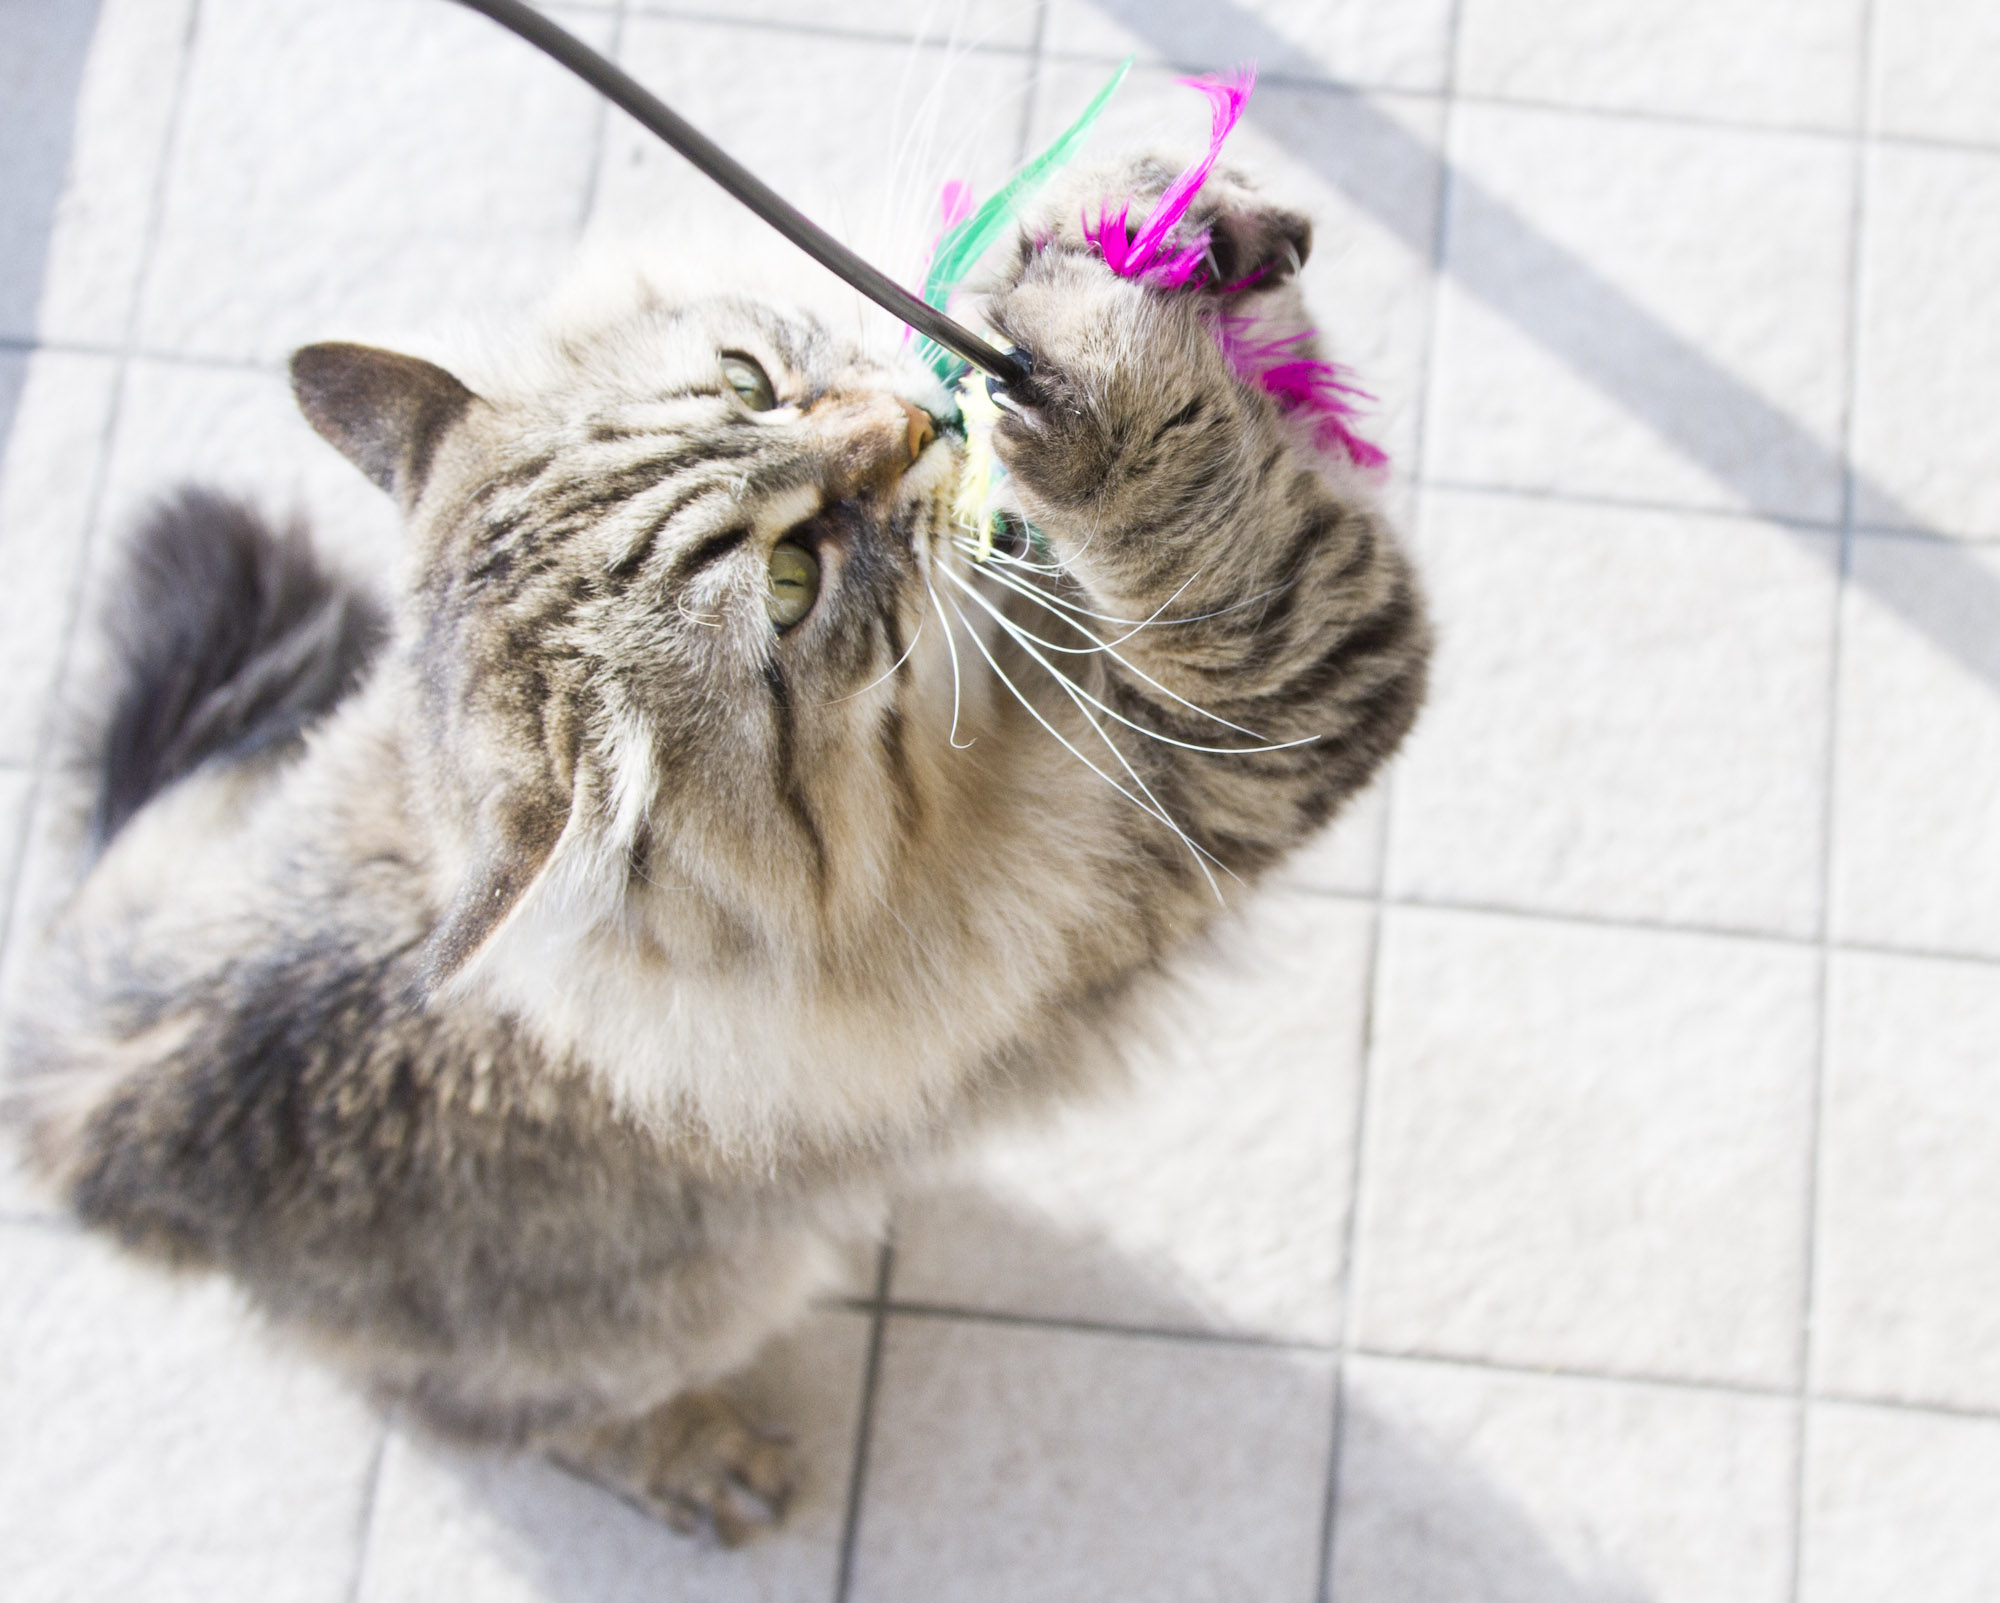 cat playing with feather wand toy